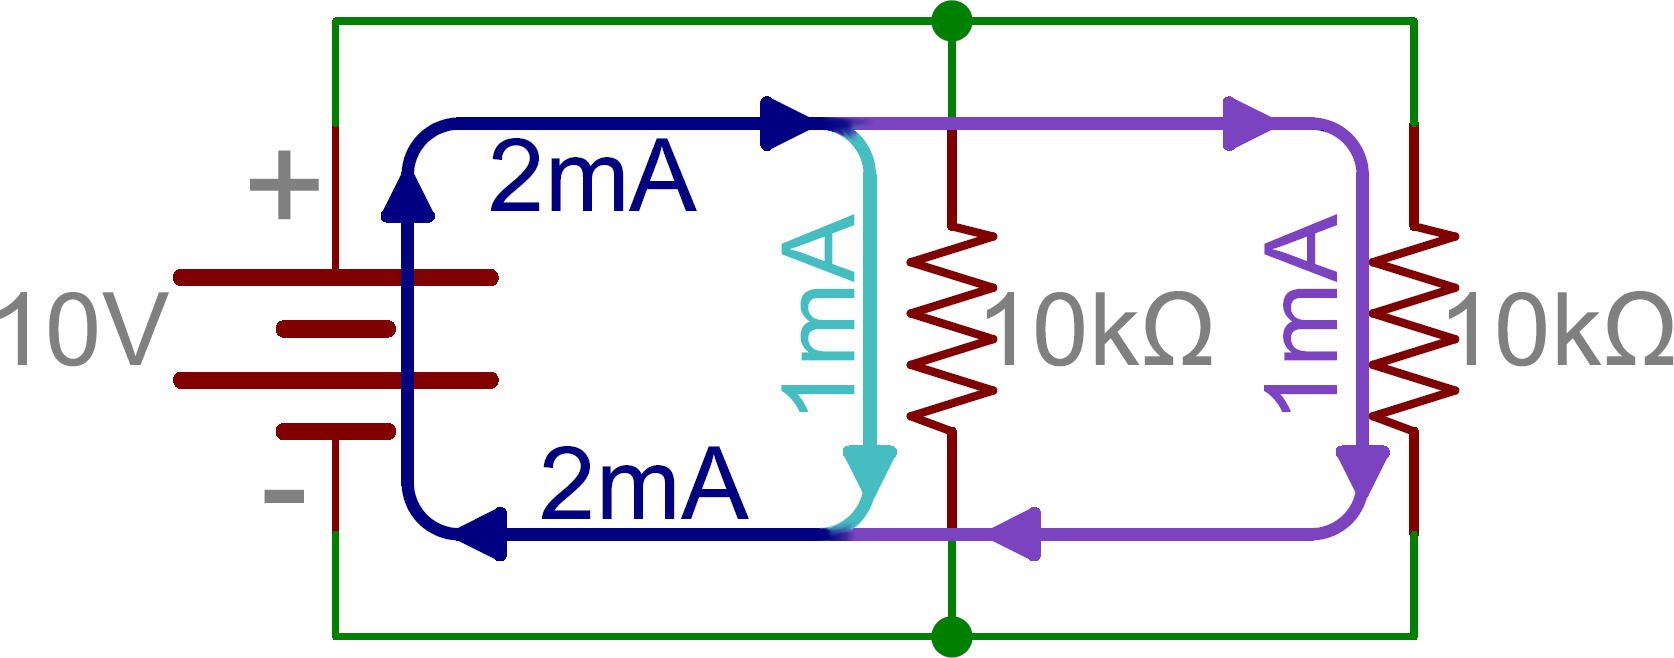 Series And Parallel Circuits Understand Dc Circuit Operation Schematic Two Resistors In With A Battery